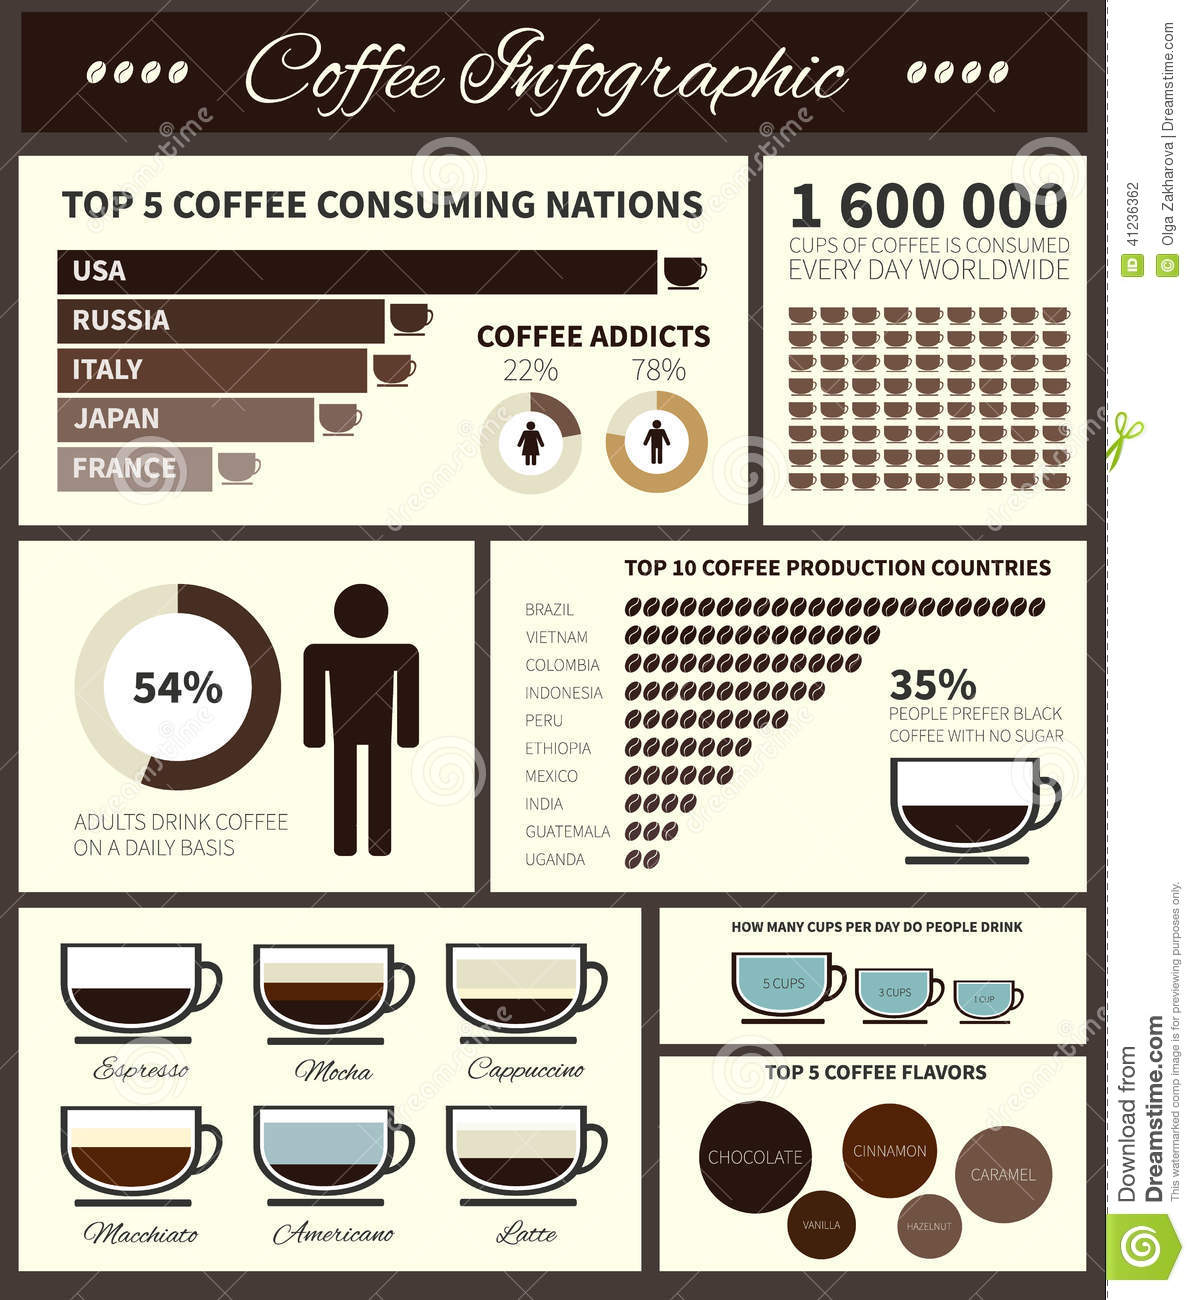 coffee-infographic-perfect-detailed-elem